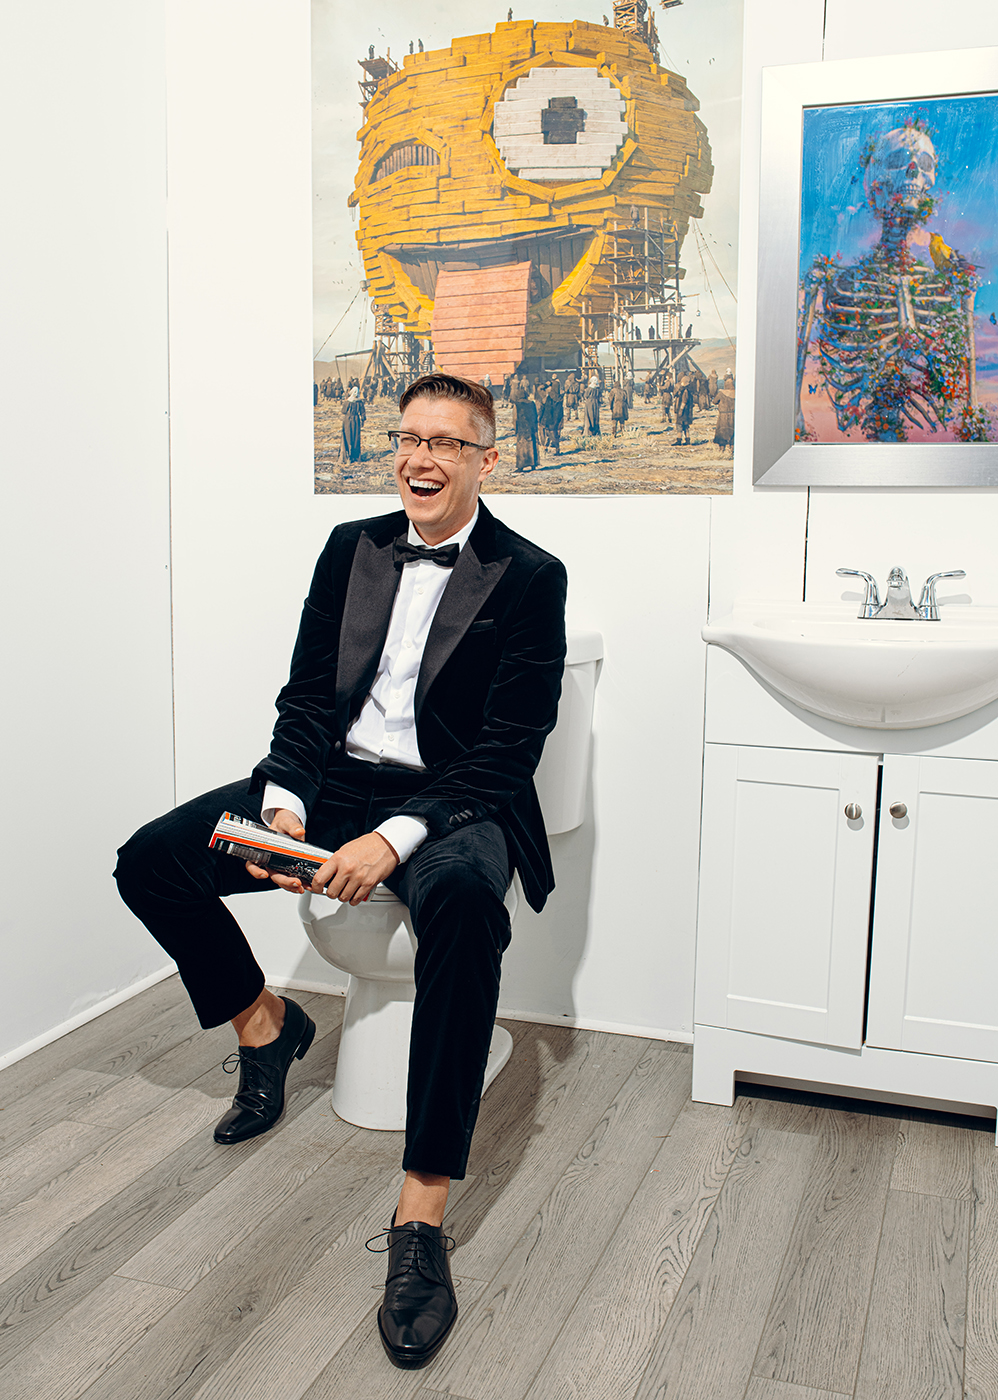 Beeple sitting on the toilet in his bathroom with his art on display behind shot by Will Crooks for British GQ